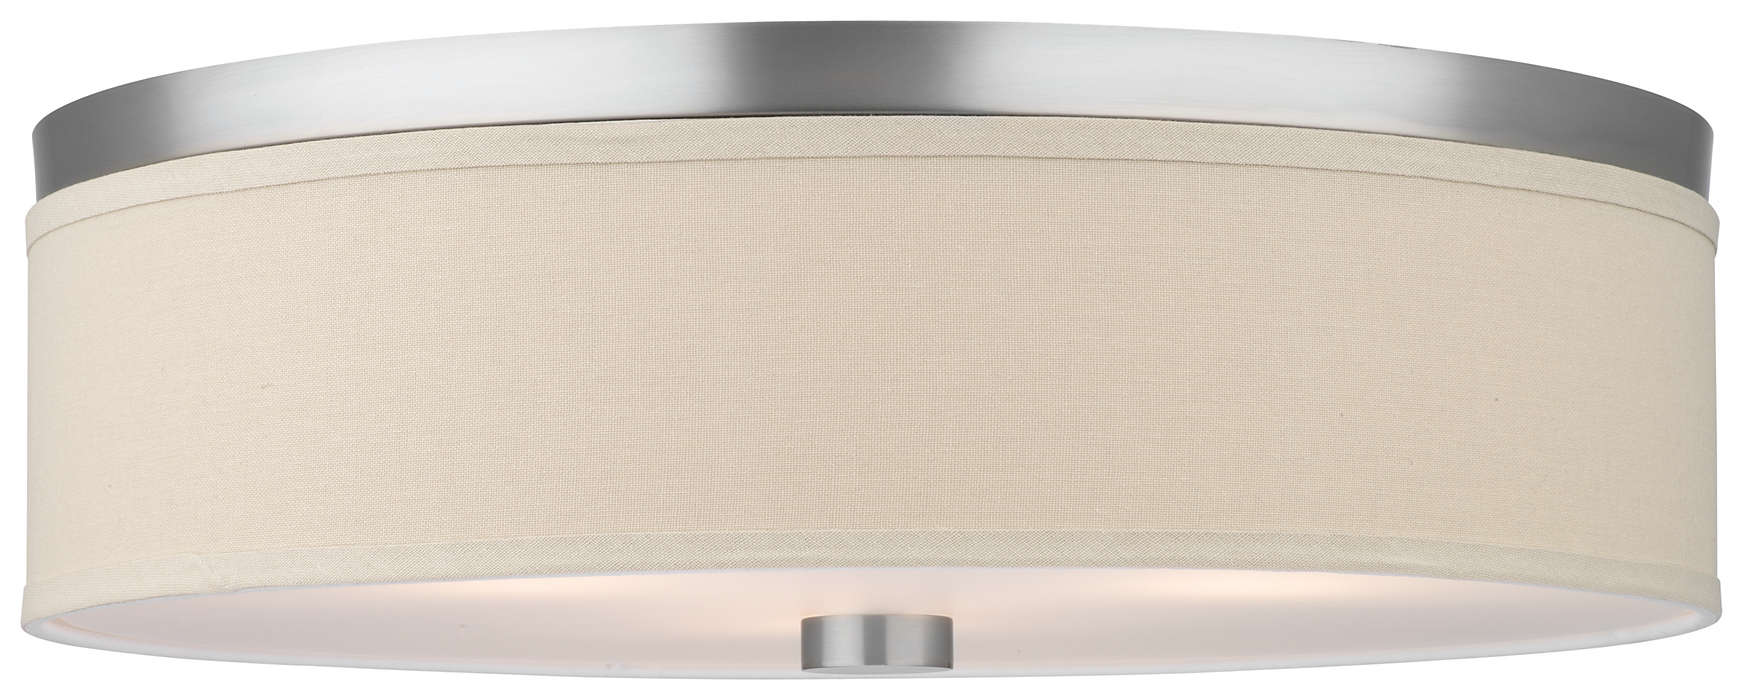 Embarcadero 3-light Ceiling in Satin Nickel finish